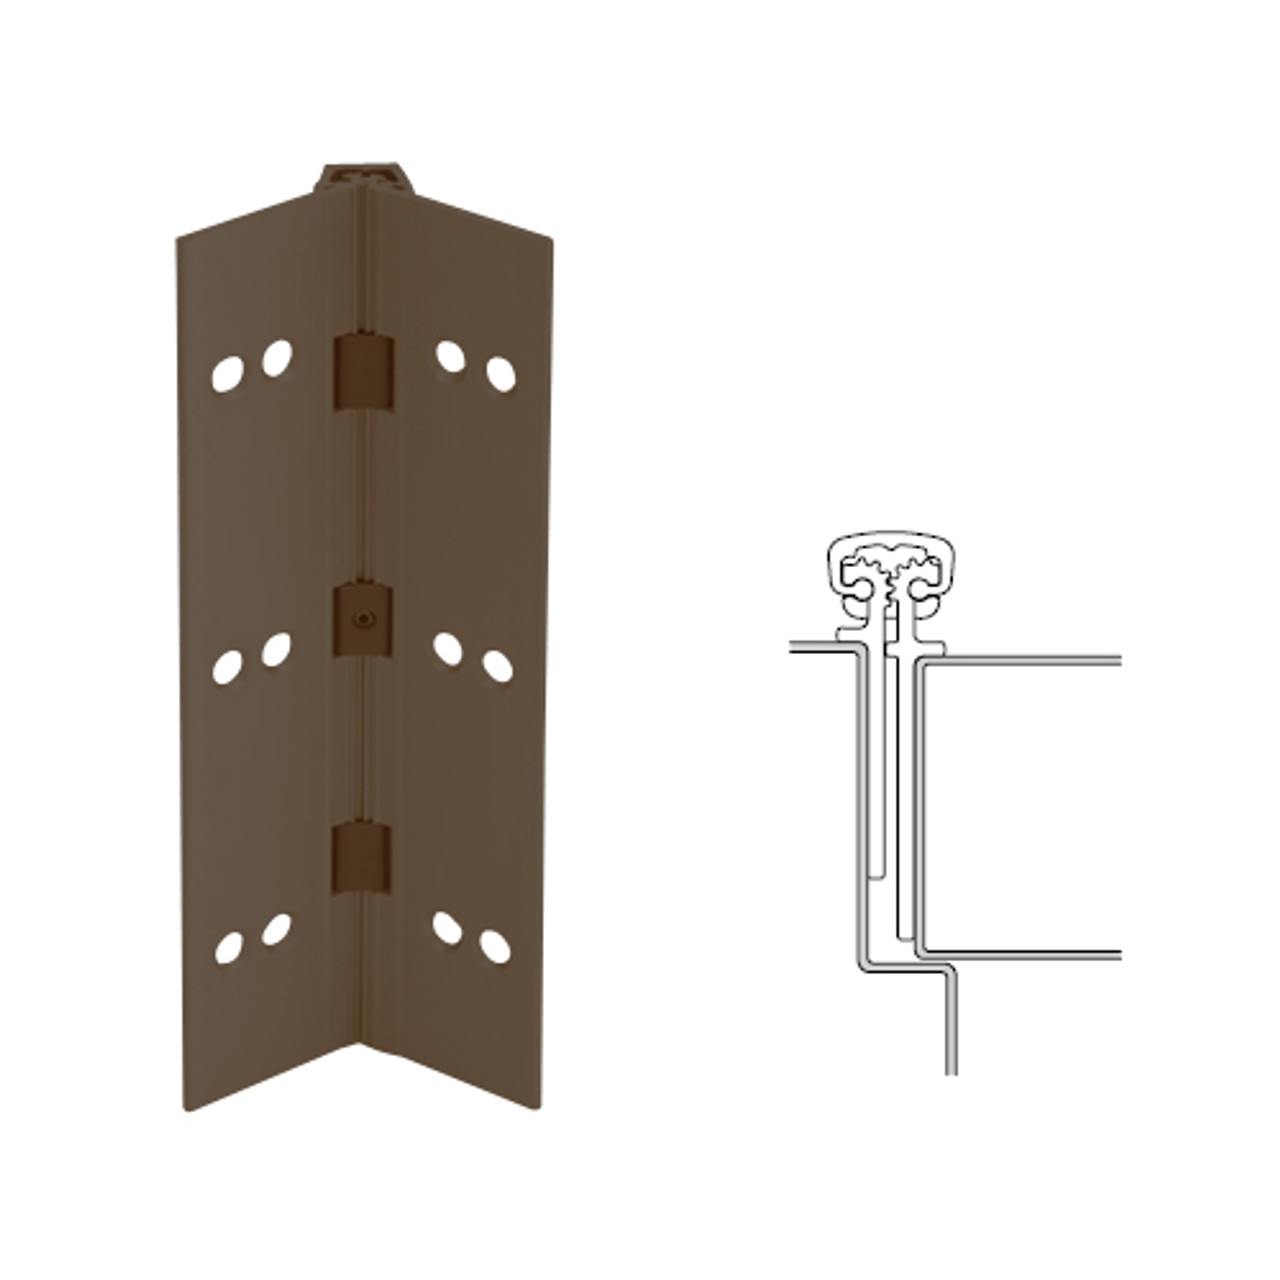 026XY-313AN-85 IVES Full Mortise Continuous Geared Hinges in Dark Bronze Anodized